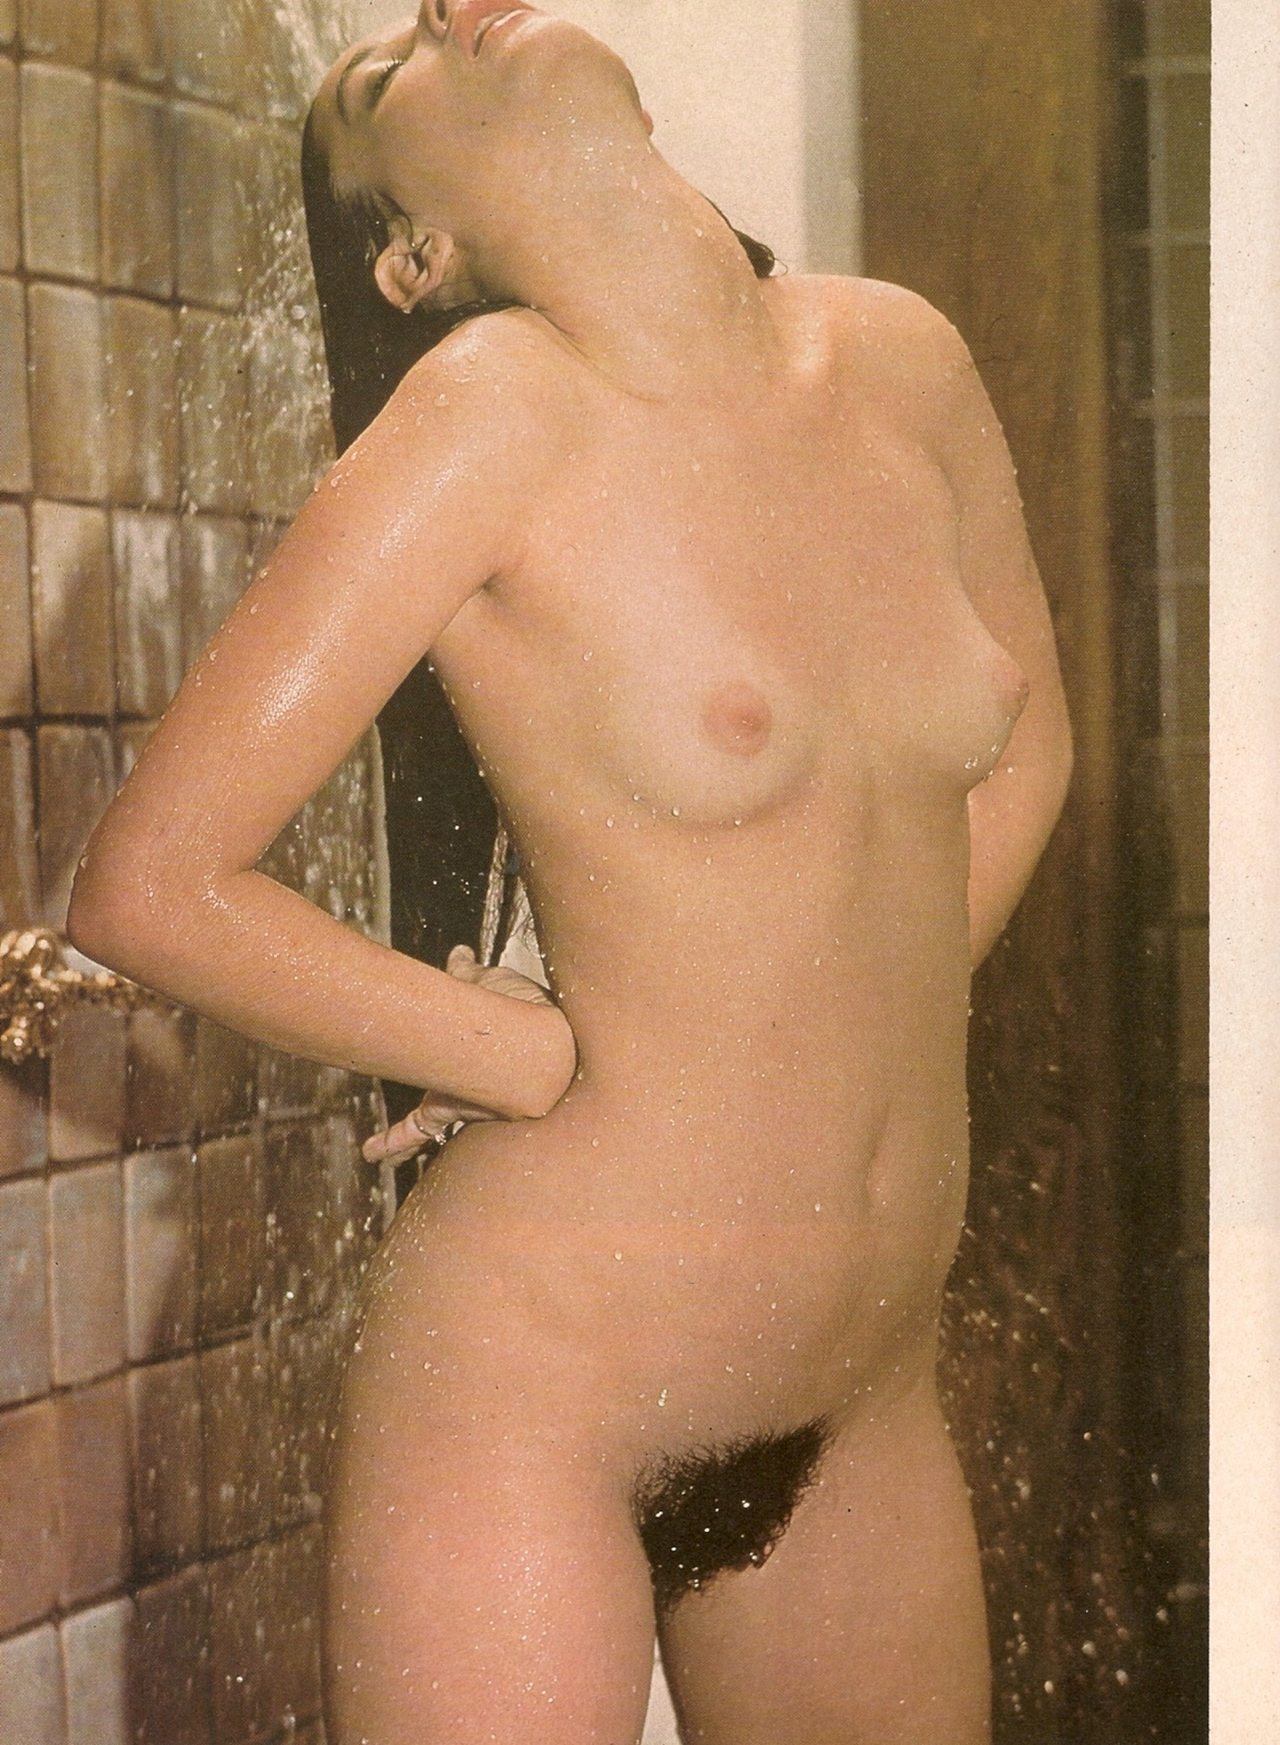 Hairy pussy demi moore nude